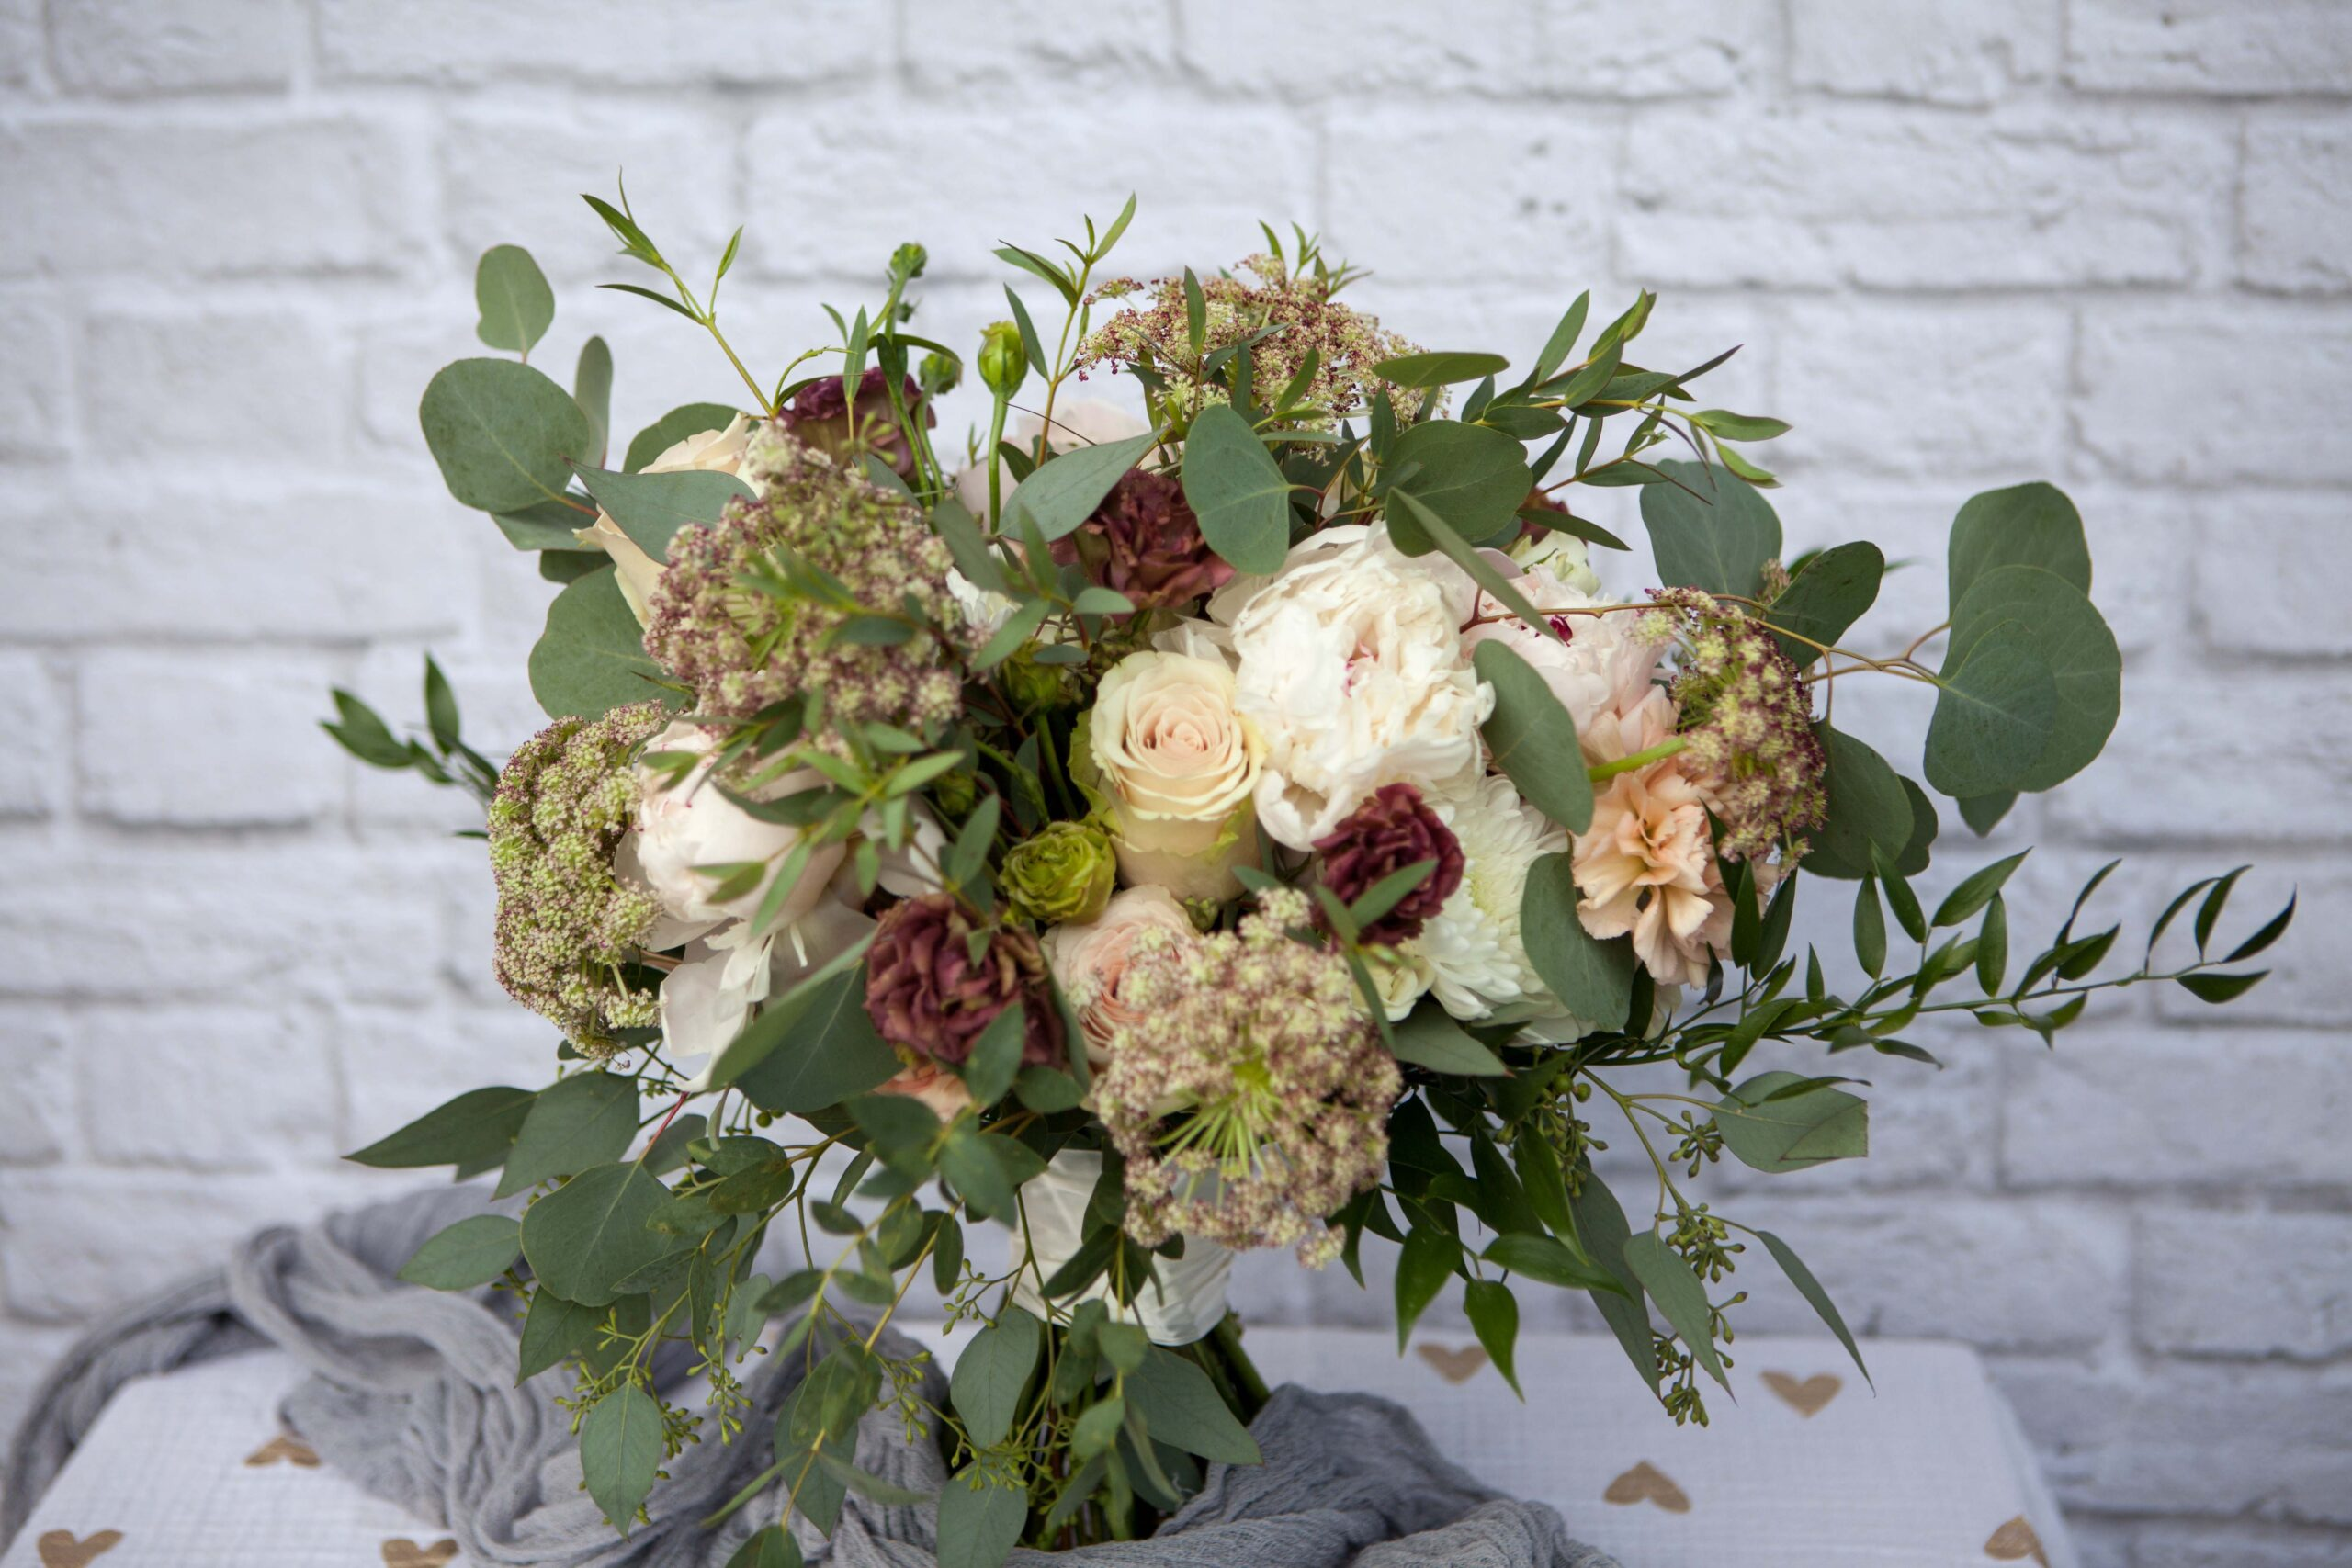 Bridal bouquet by Anchorage florist Natasha Price of Paper Peony Alaska